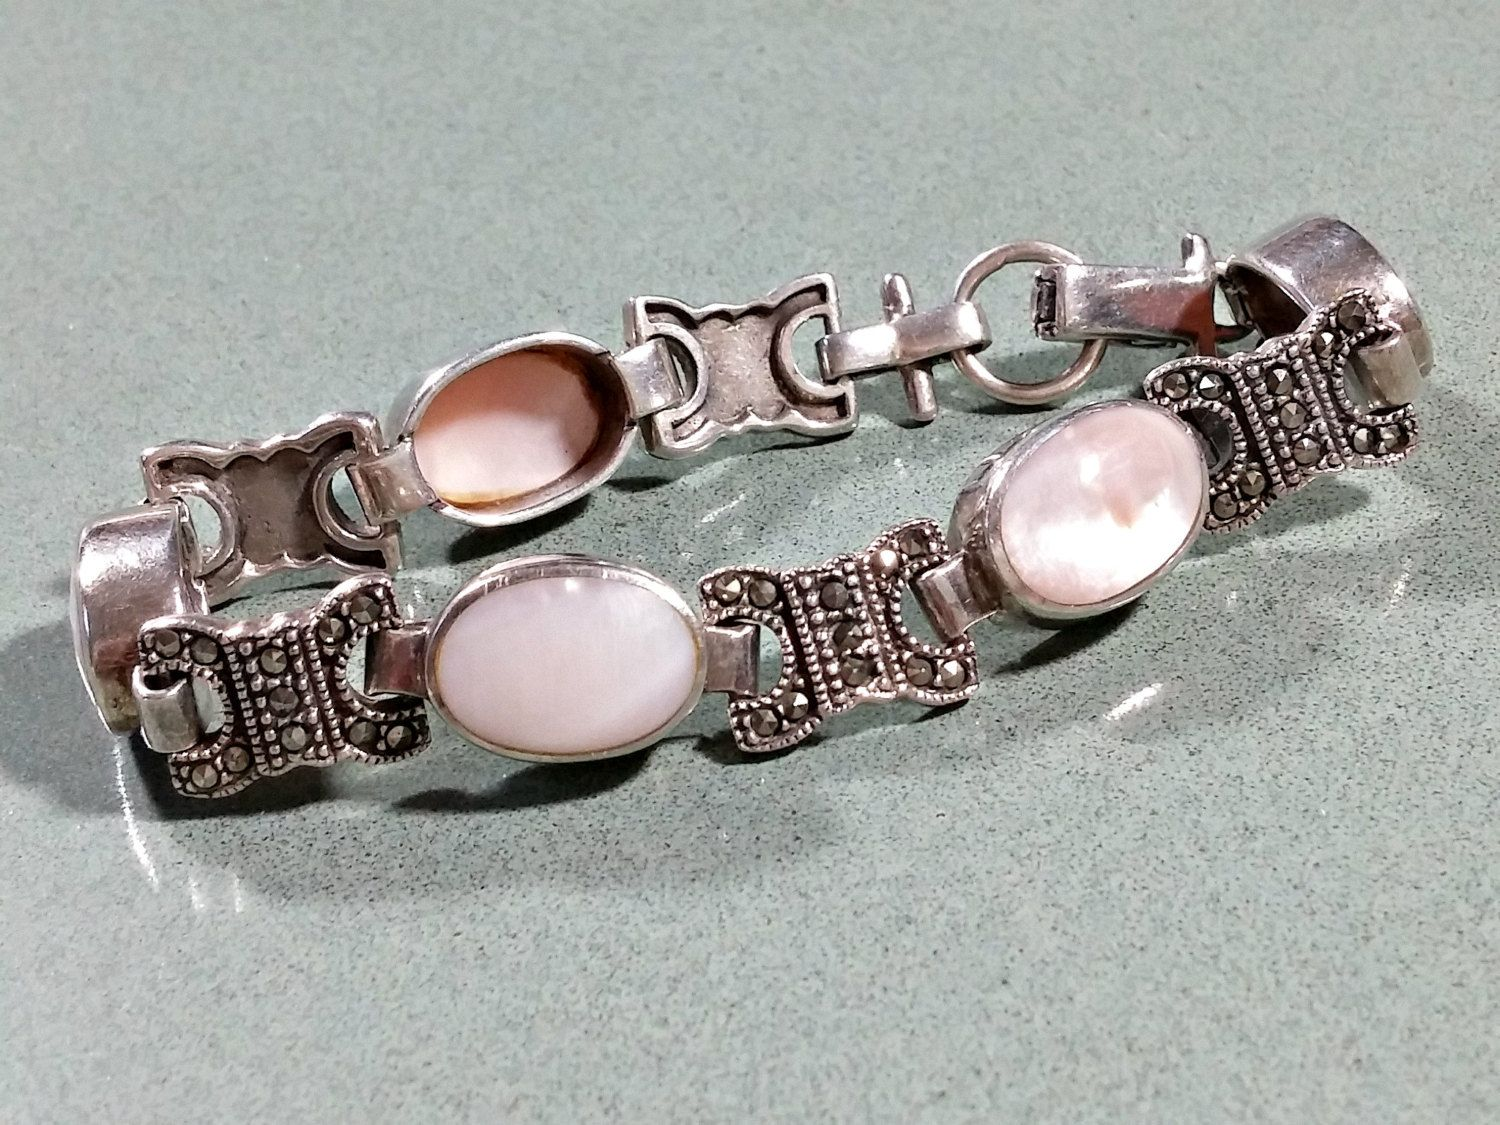 Vintage Mother Of Pearl Marcasites Sterling Silver Bracelet Pale Pink Oval  Shaped Inlaid Mop Chain Link Style 725 Inches Outstanding Nice